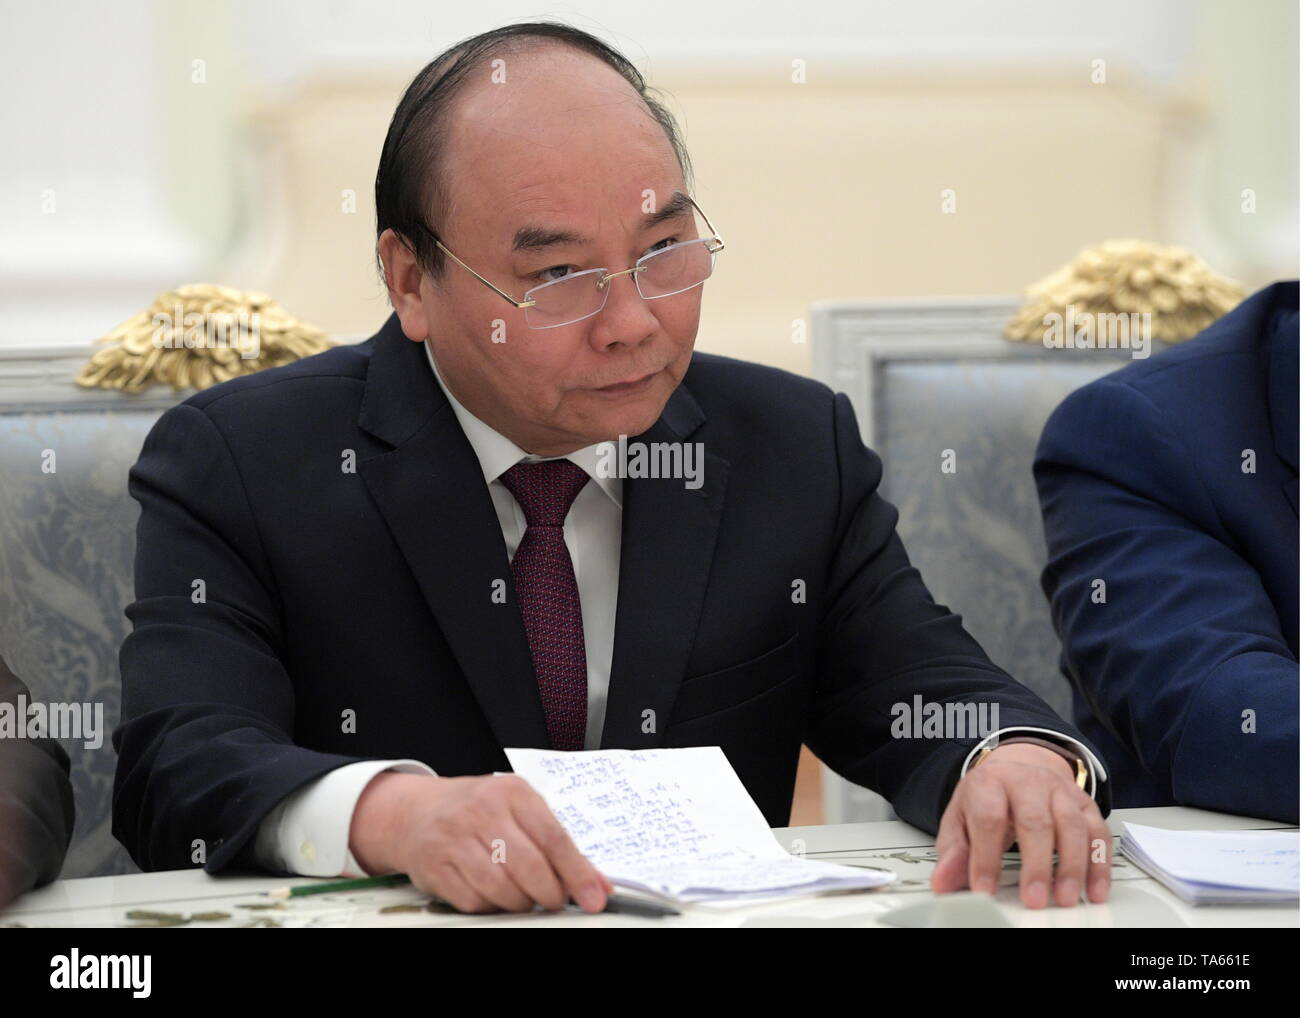 Moscow, Russia. 22nd May, 2019. MOSCOW, RUSSIA - MAY 22, 2019: Vietnam's Prime Minister Nguyen Xuan Phuc during a meeting with Russia's President Vladimir Putin at the Moscow Kremlin. Alexei Druzhinin/Russian Presidential Press and Information Office/TASS Credit: ITAR-TASS News Agency/Alamy Live News - Stock Image